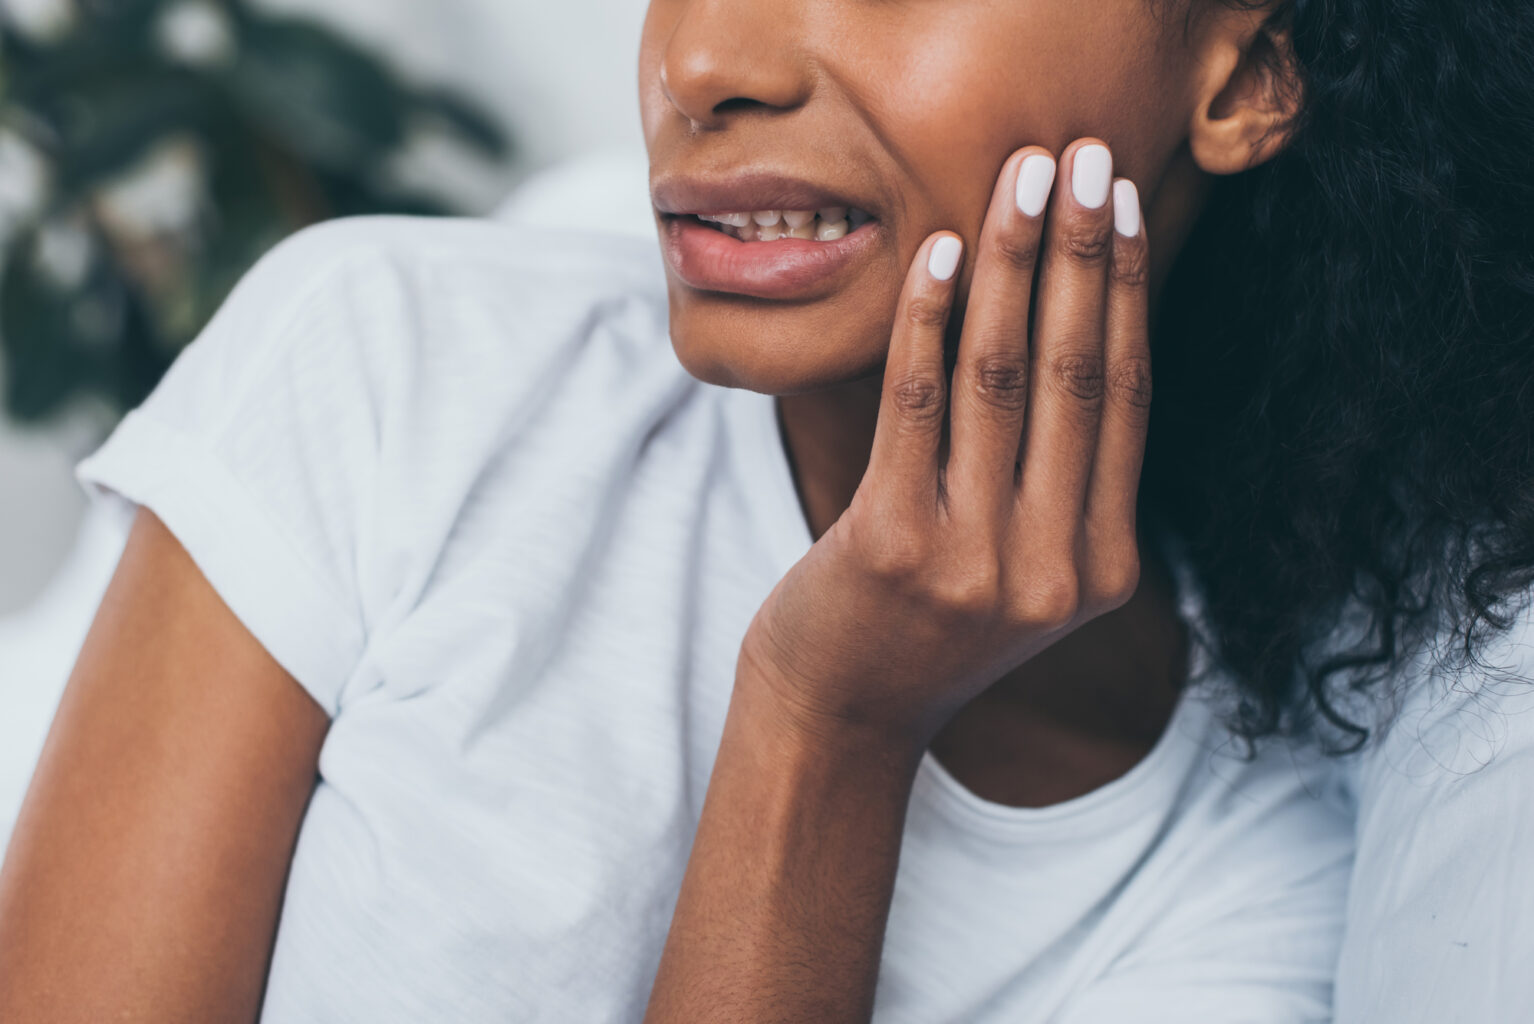 Can stress cause TMJ disorder?